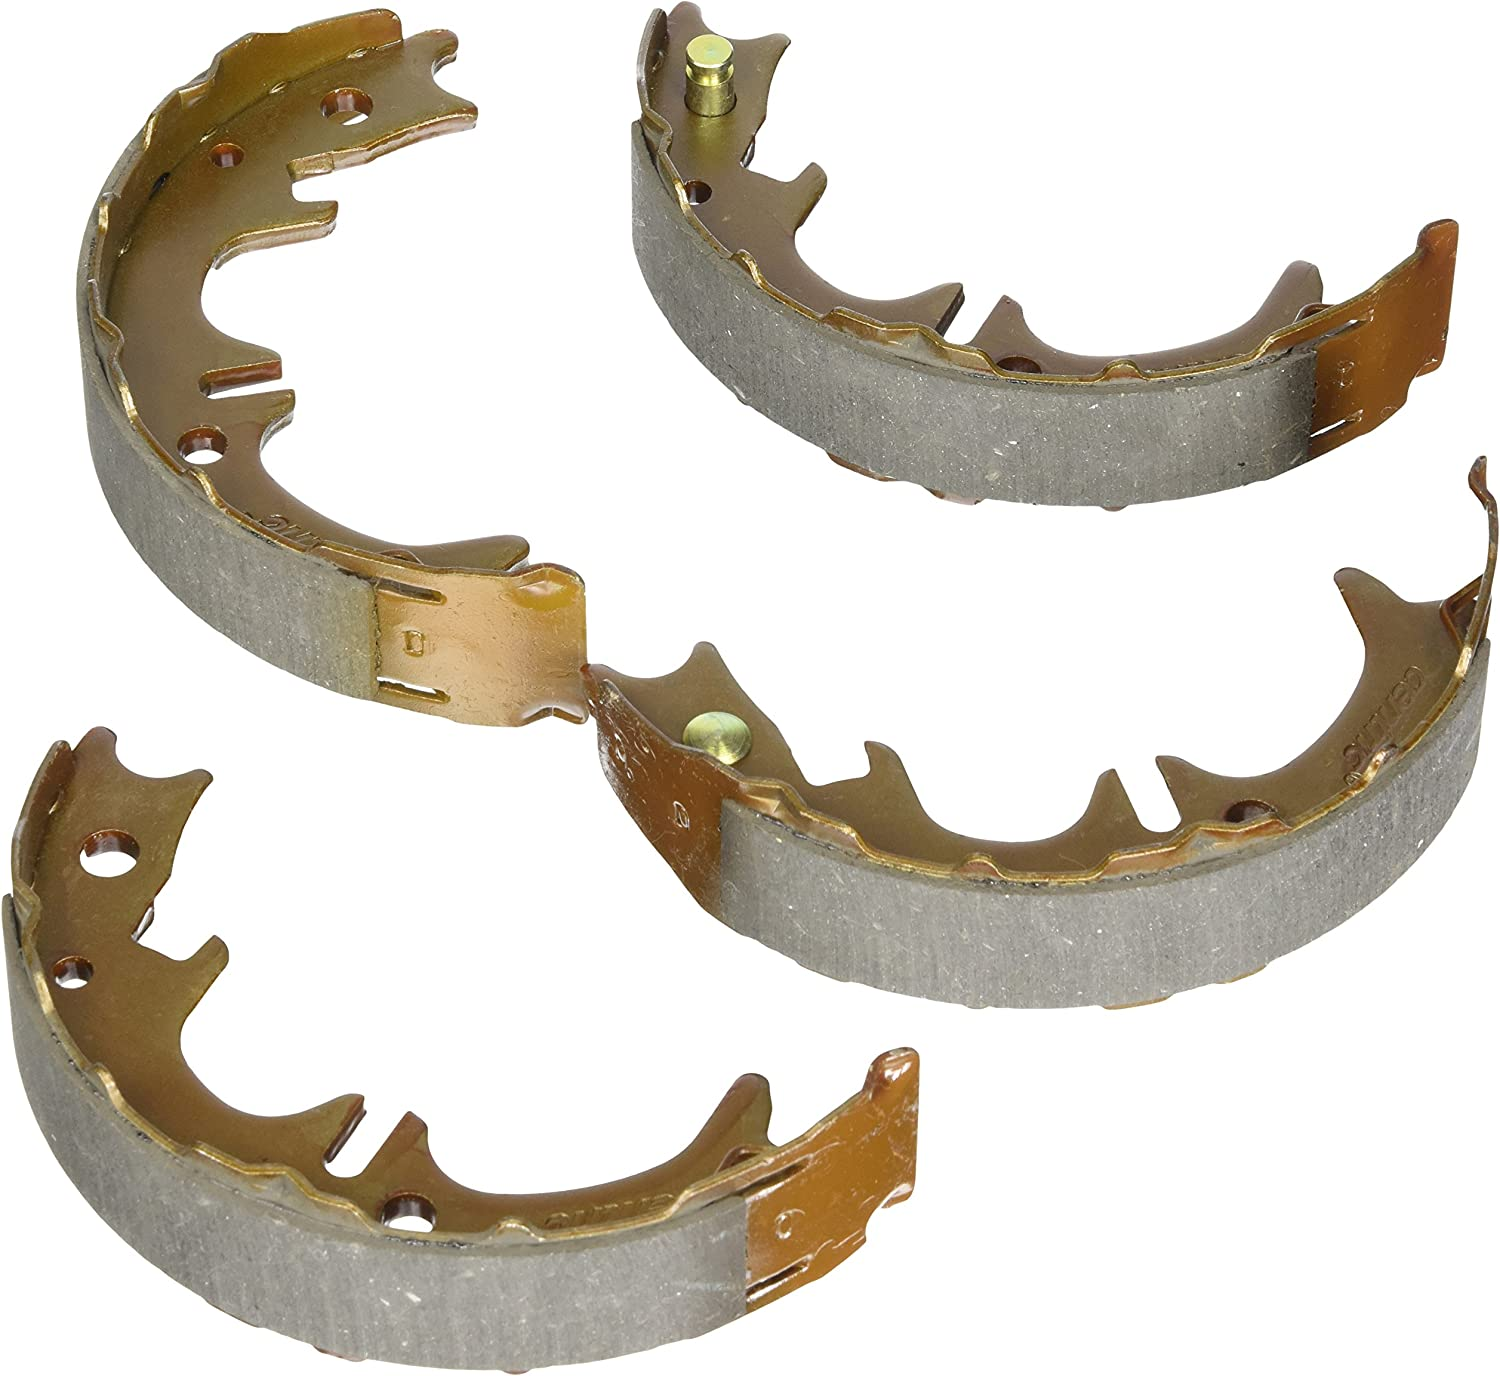 111.04190 Centric Brake Shoe Sets 2-Wheel Set Front or Rear New for Chevy J20